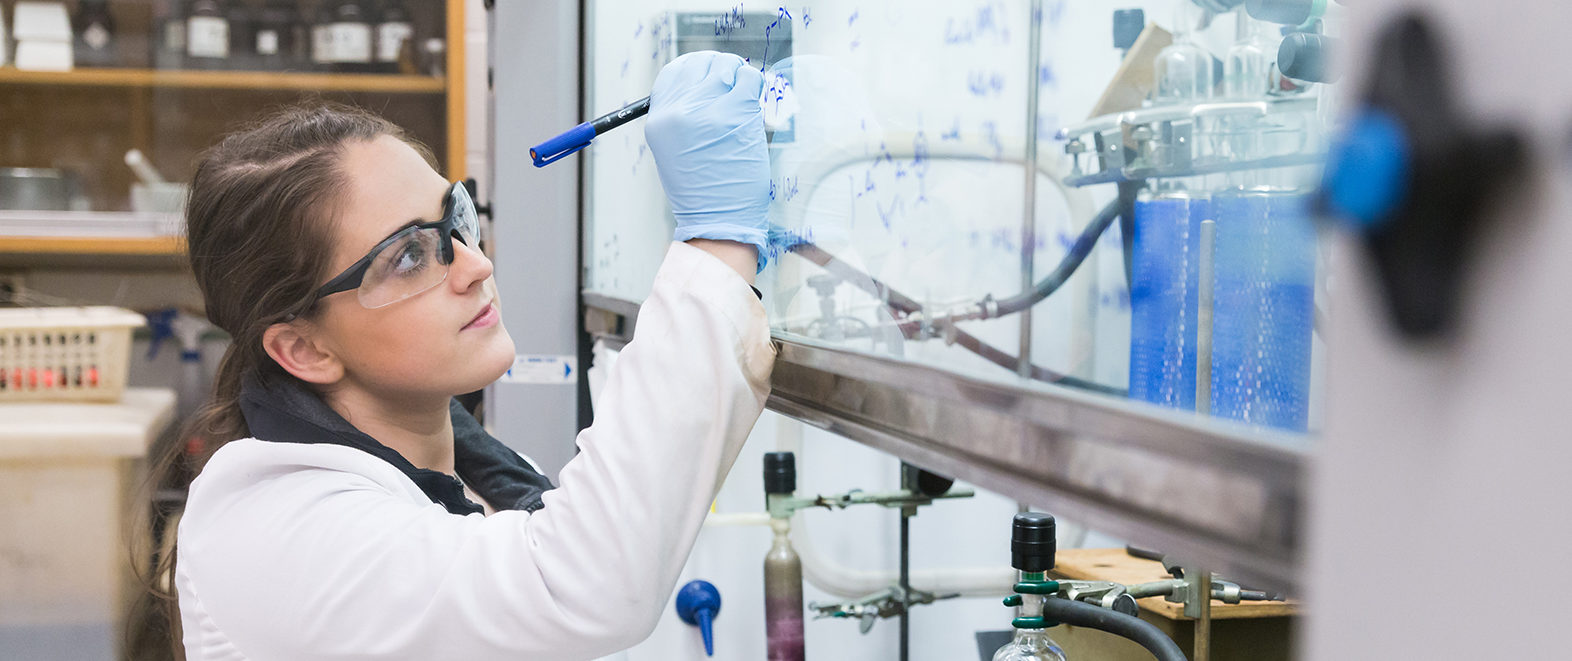 Female student writing on a glass in lab.